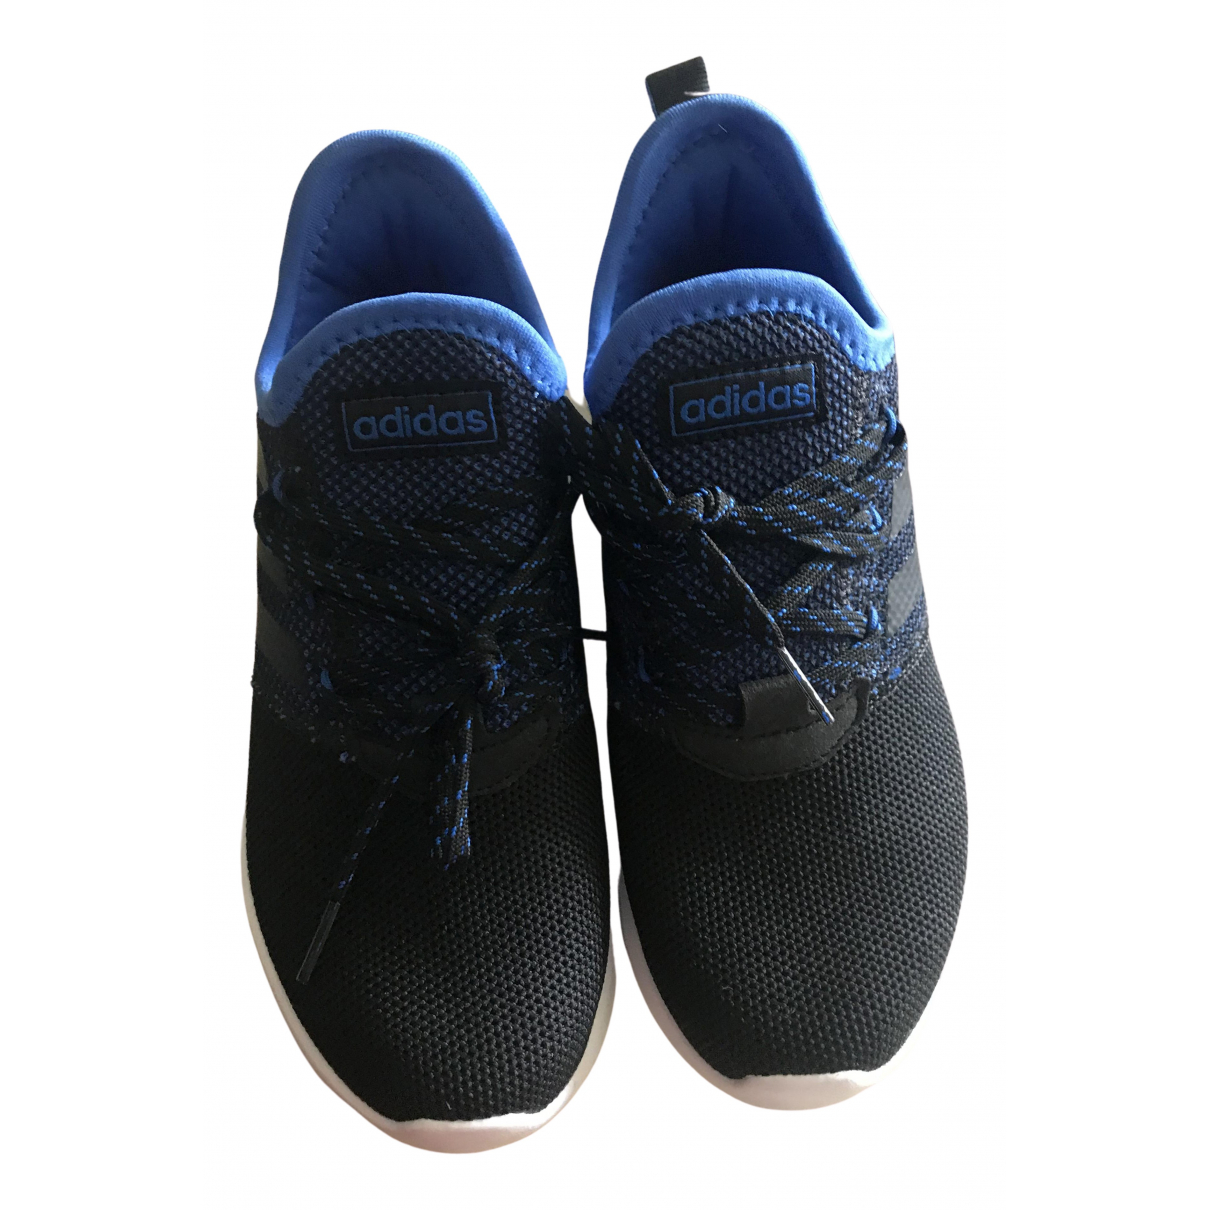 Adidas N Blue Rubber Trainers for Kids 38 FR